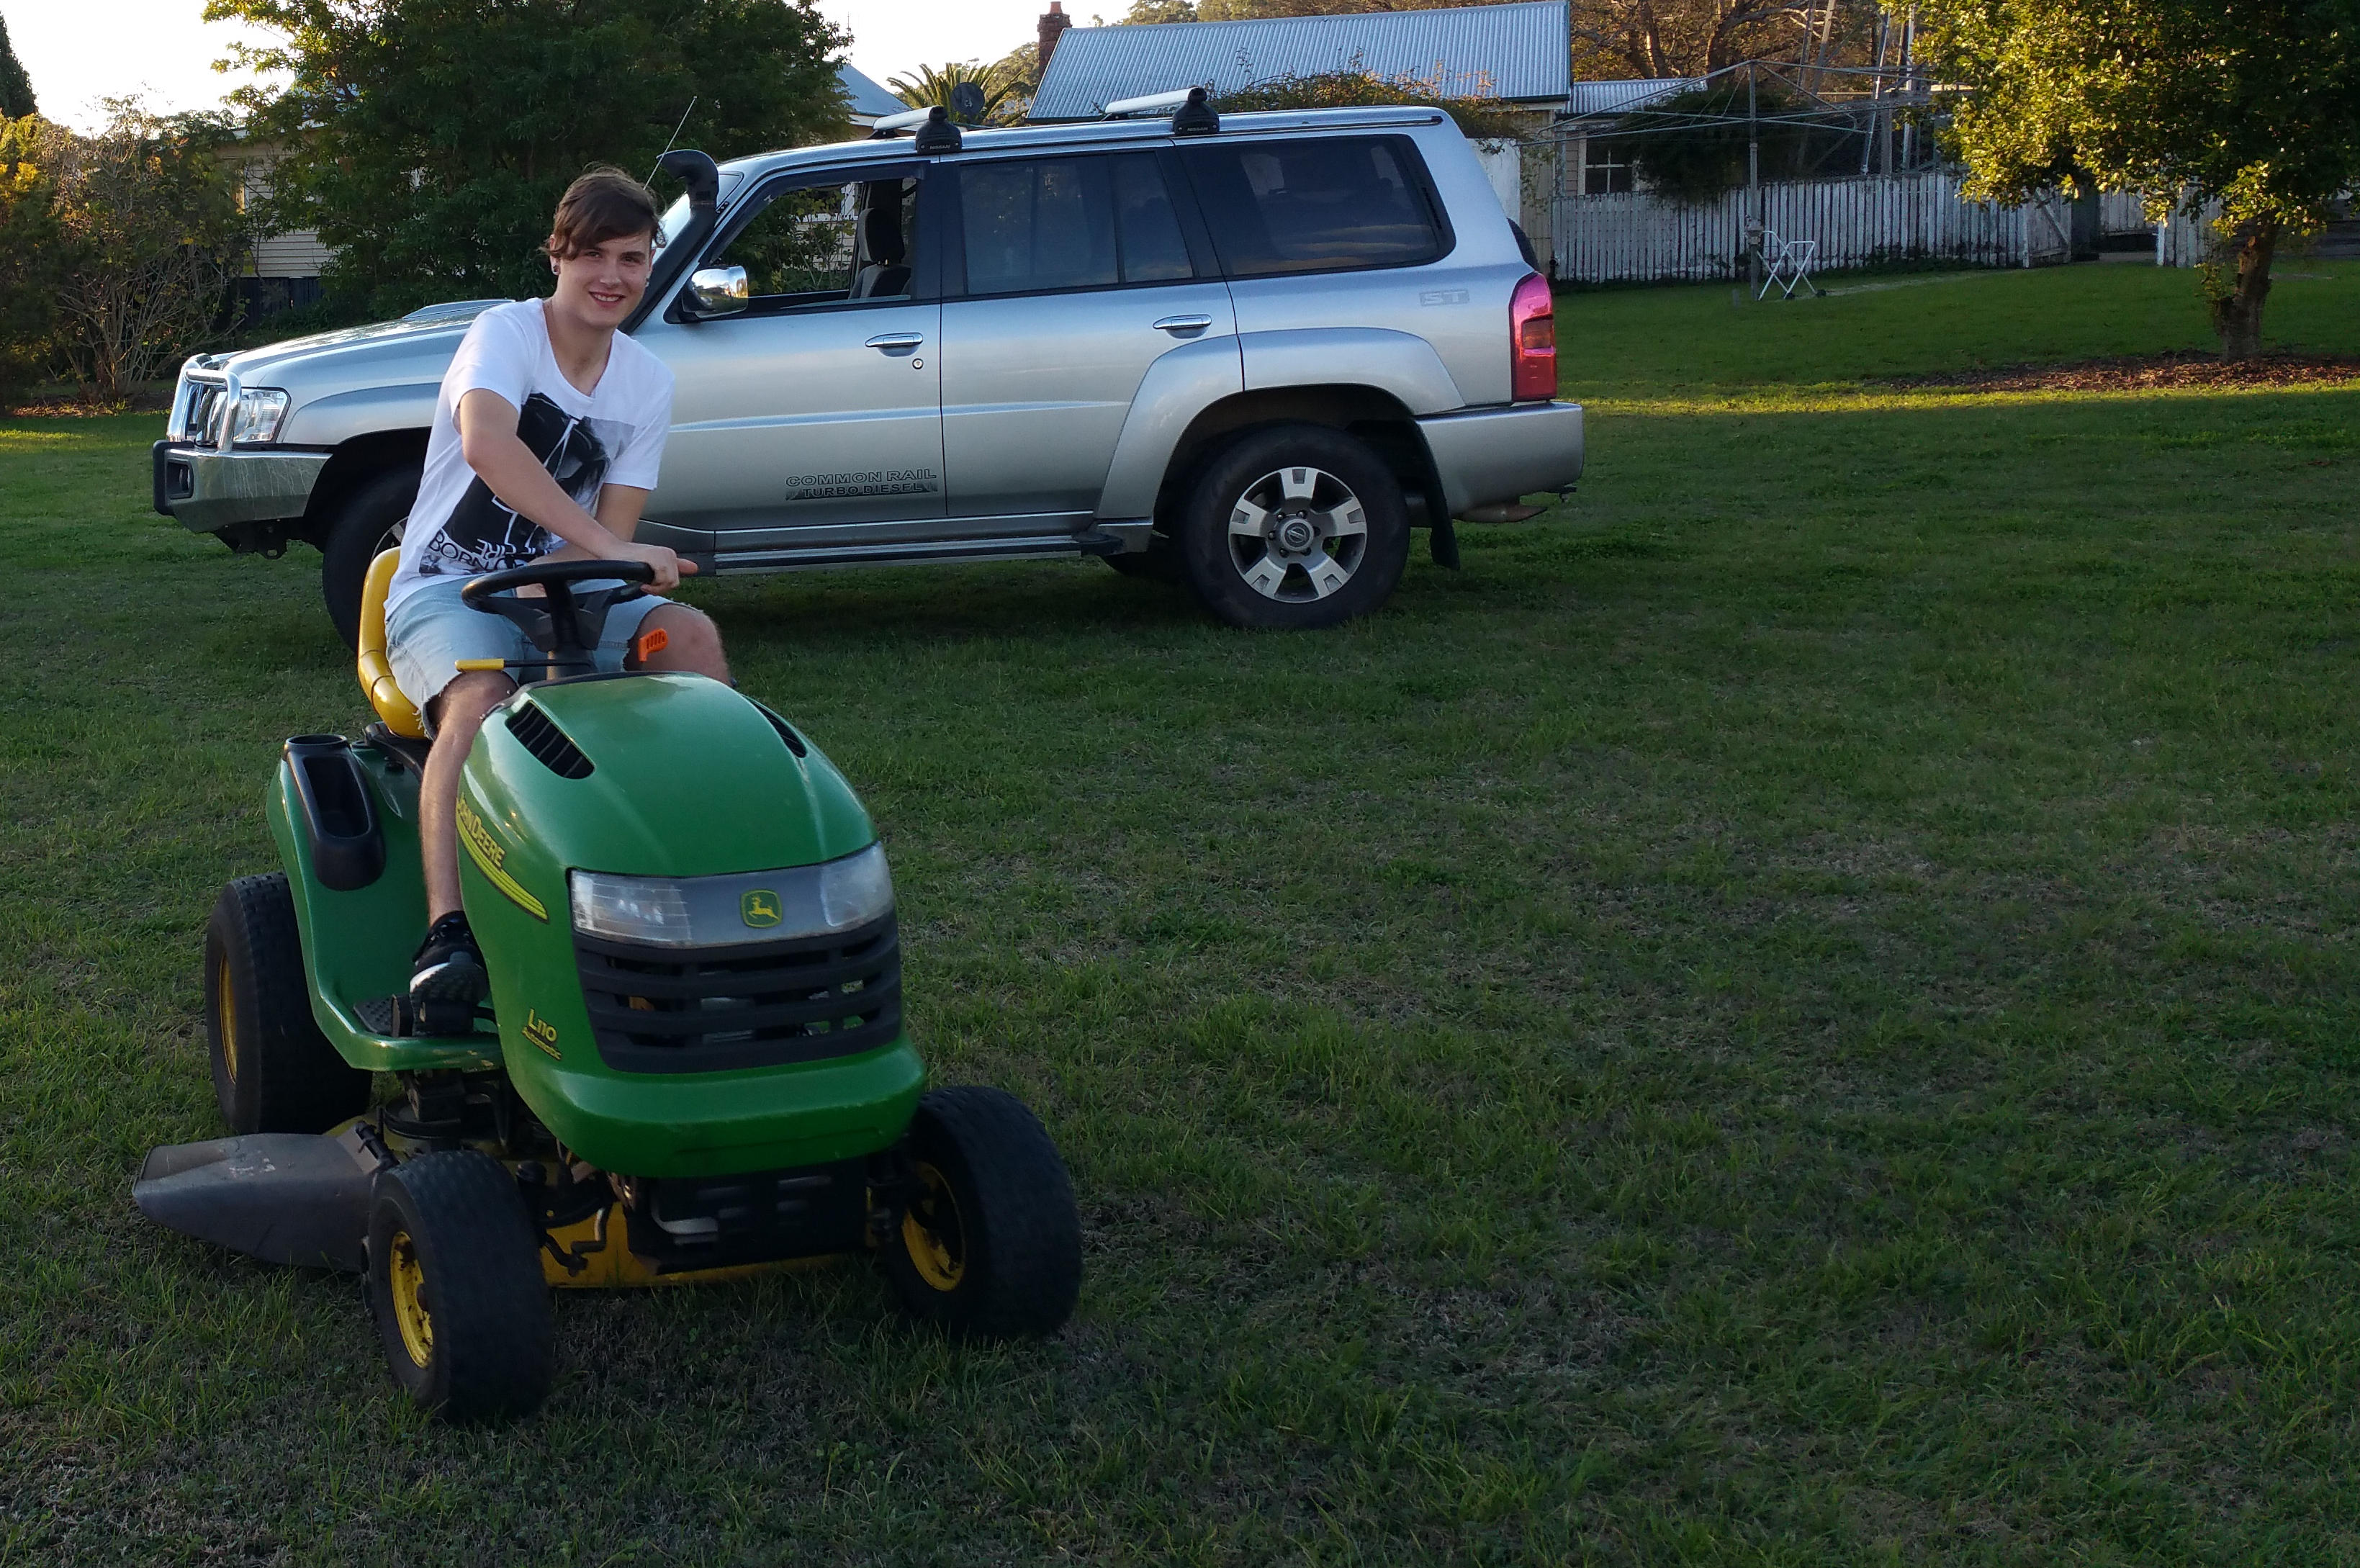 Ash takes the lawn mower for a spin around his uncle's two acres